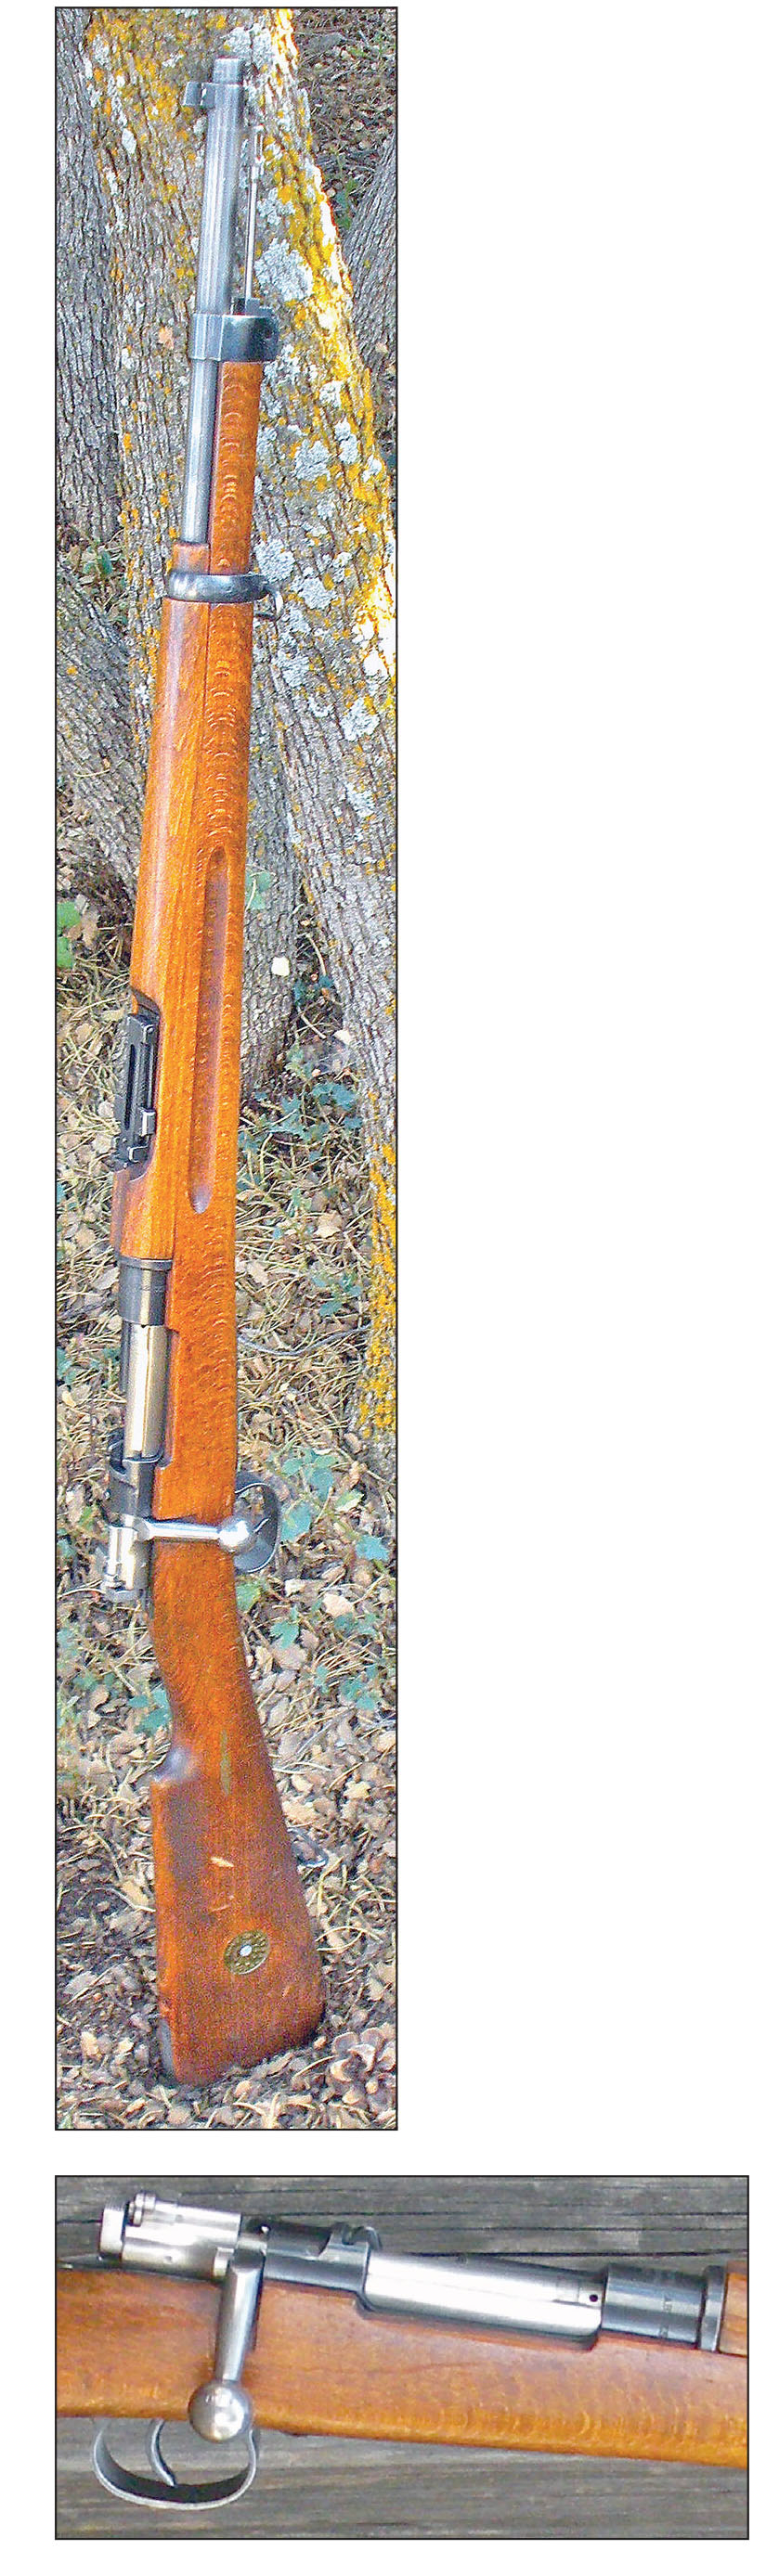 This Model 96 6.5x55 Short Rifle manufactured by Husqvarna Vapenfabriks Aktiebolag in 1942 is one of three rifles Dave purchased in the early 1990s. If it and the other two saw use during World War II, they don't show it.